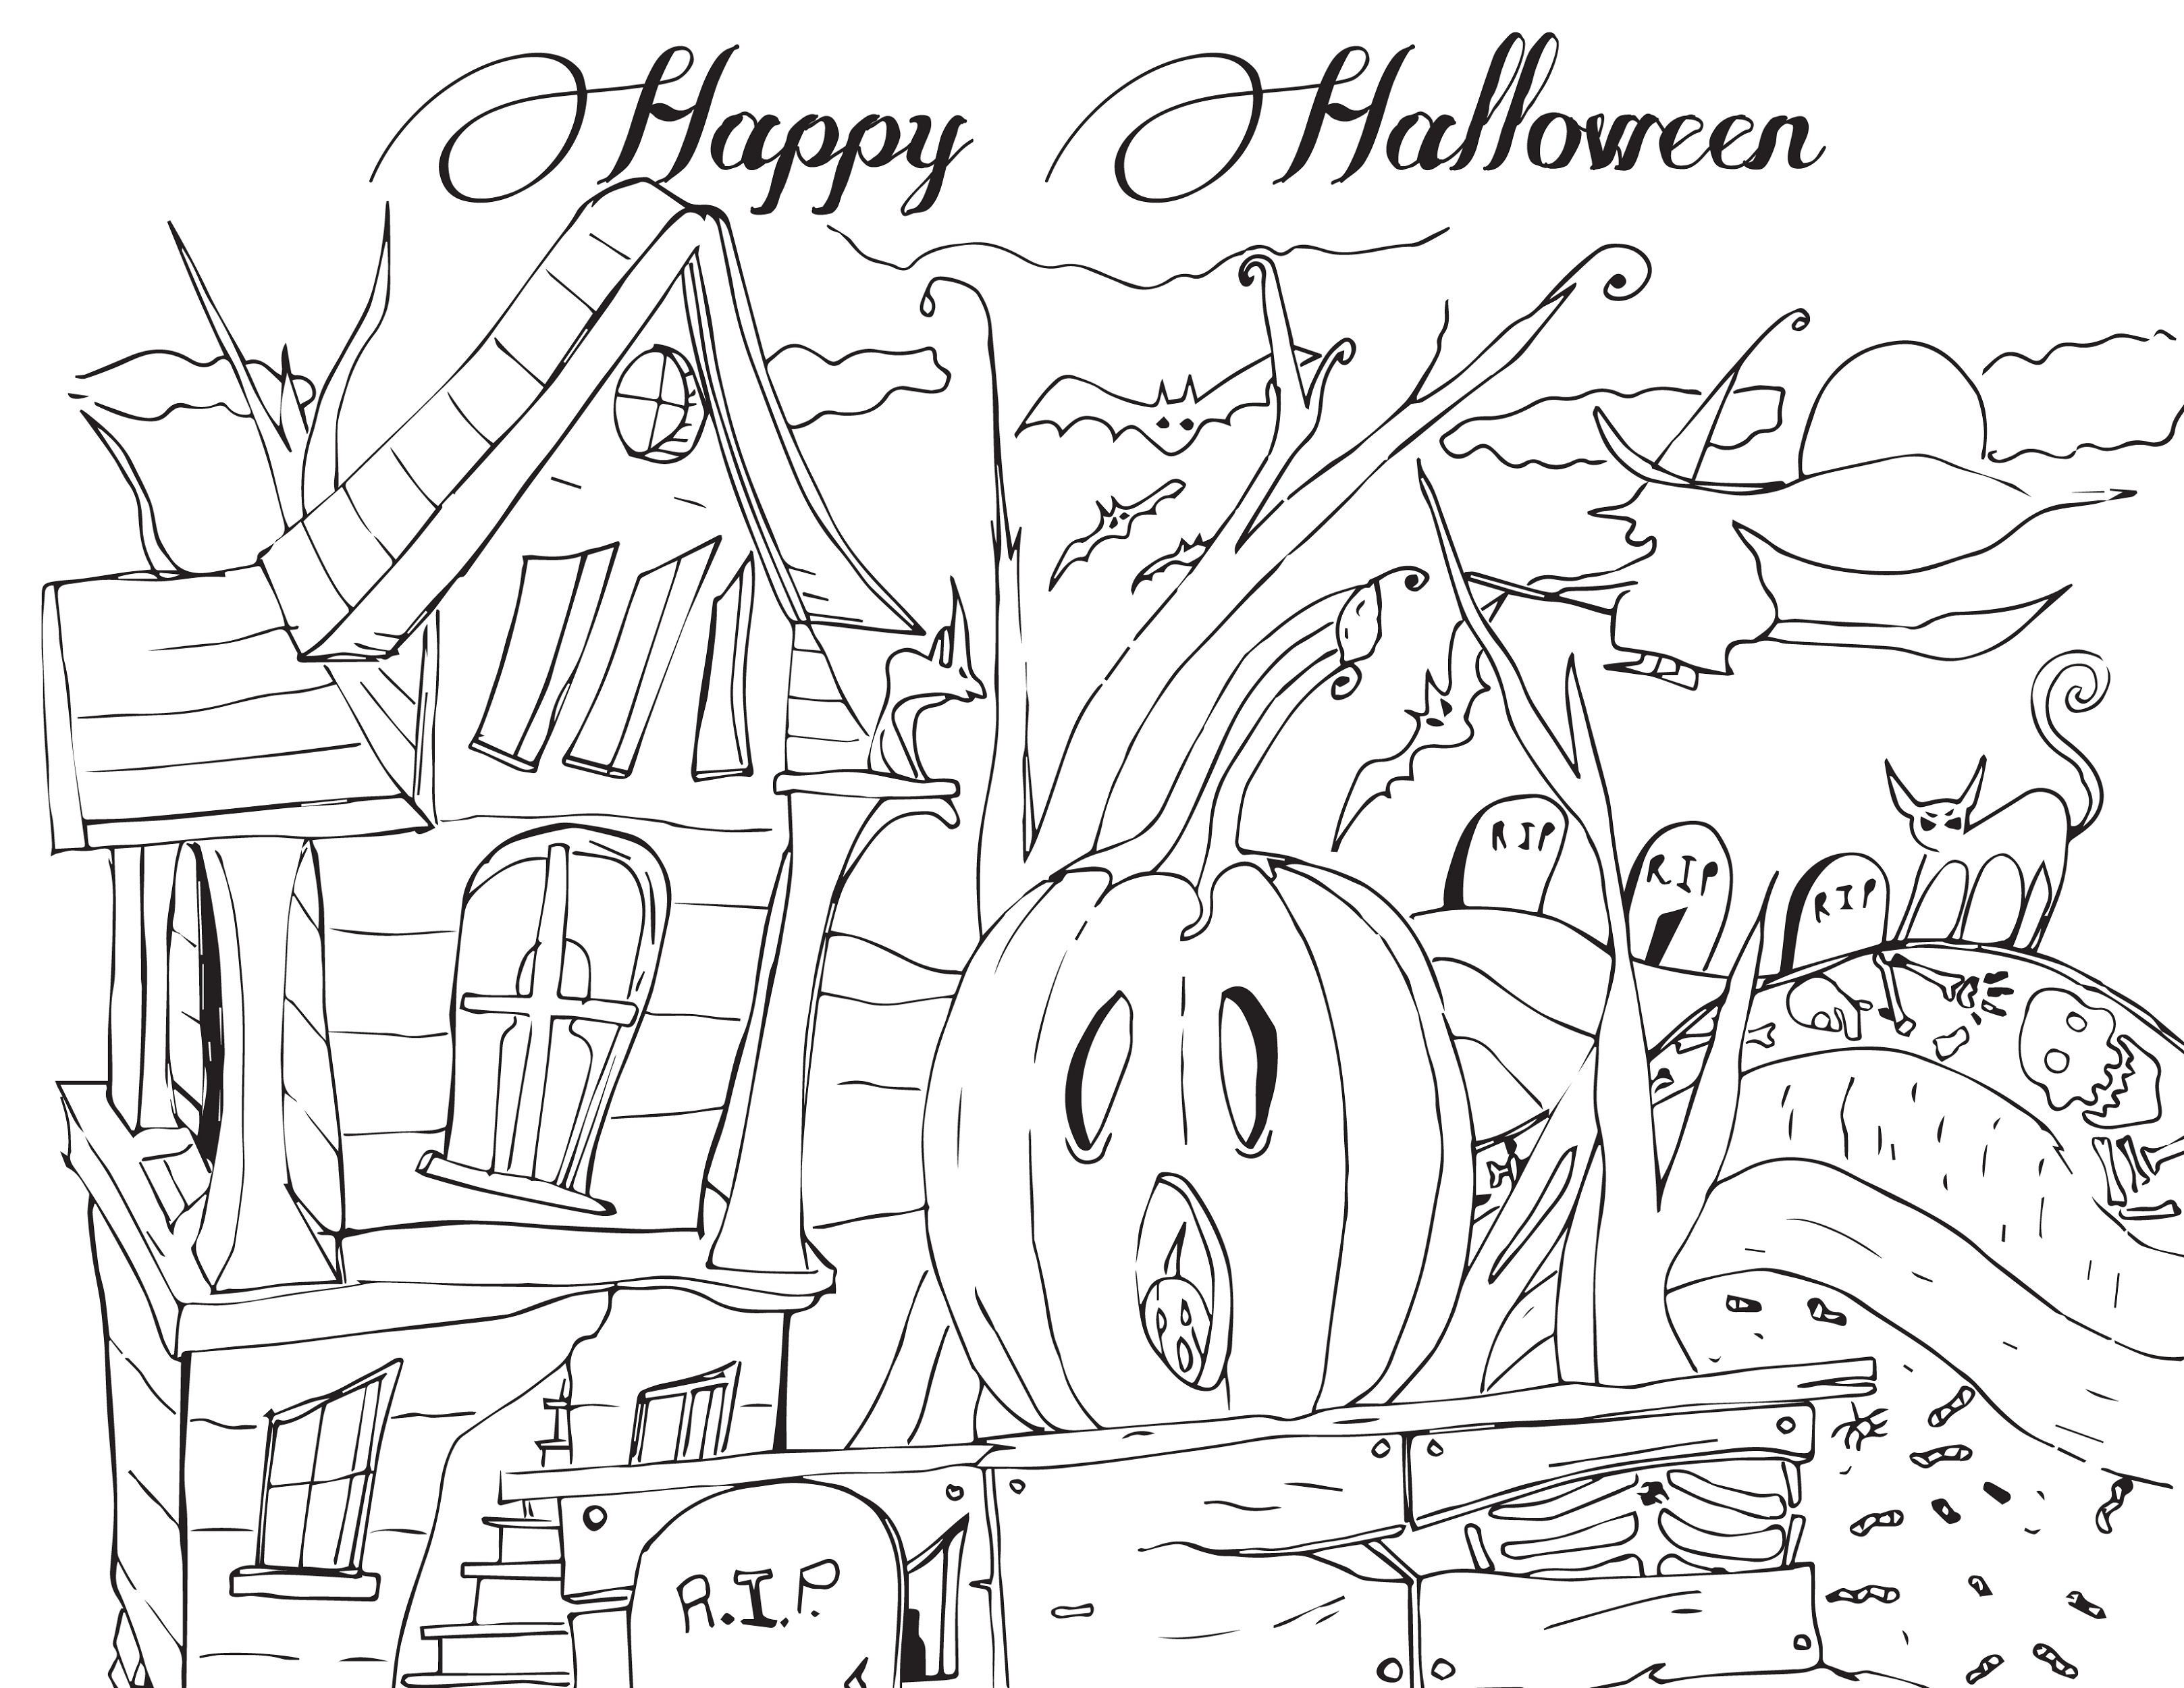 Halloween-Coloring-Sheets-To-Print